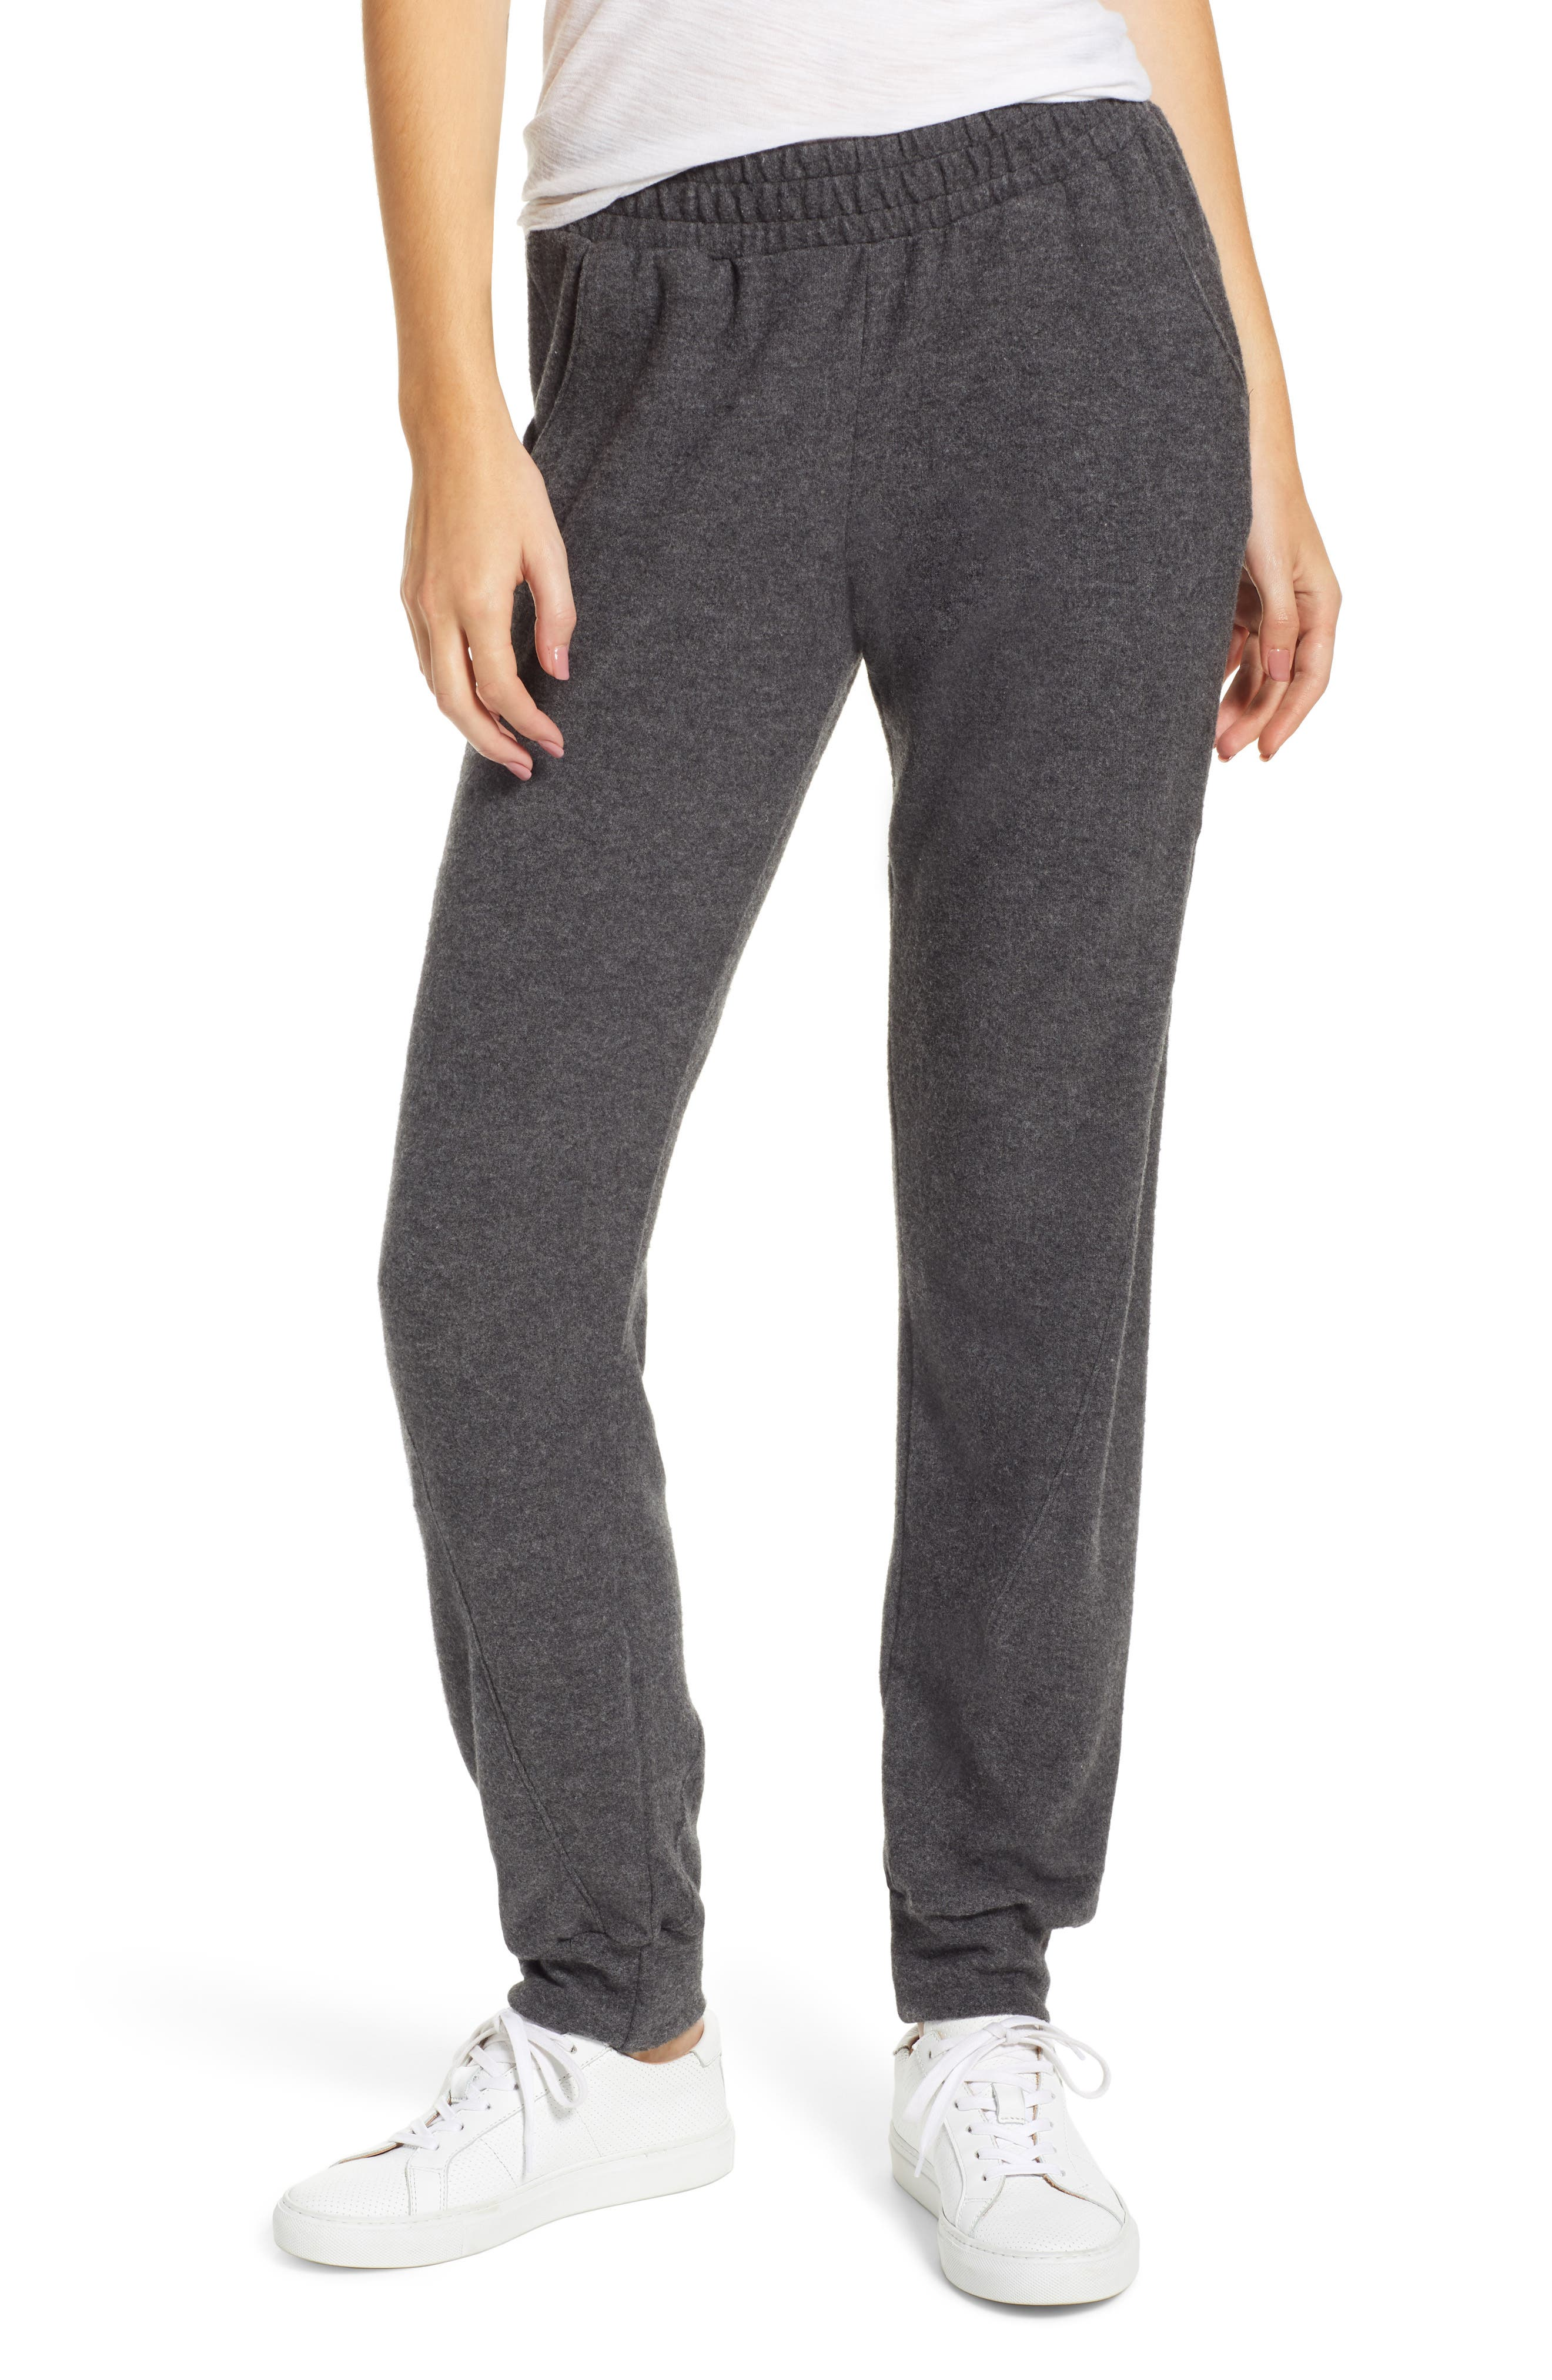 PROJECT SOCIAL T Calhoun Cozy Seamed Sweatpants in Charcoal